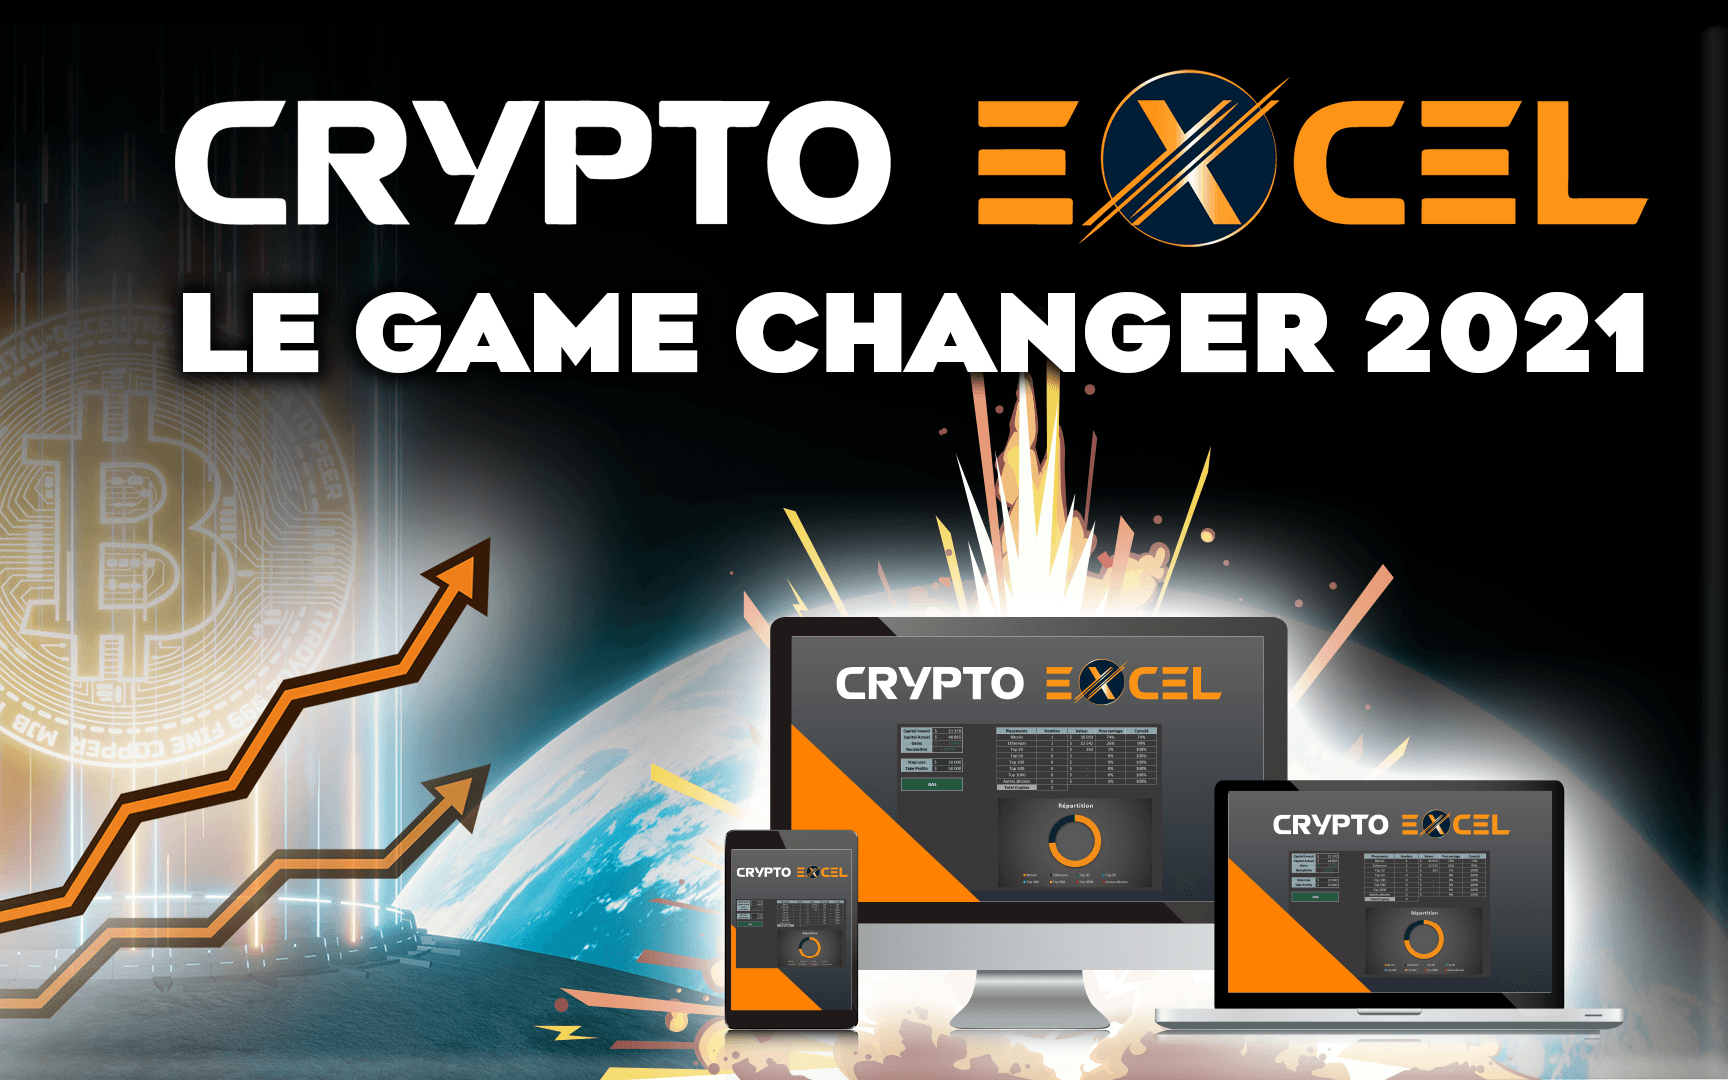 Crypto Excel - le Game Changer 2021